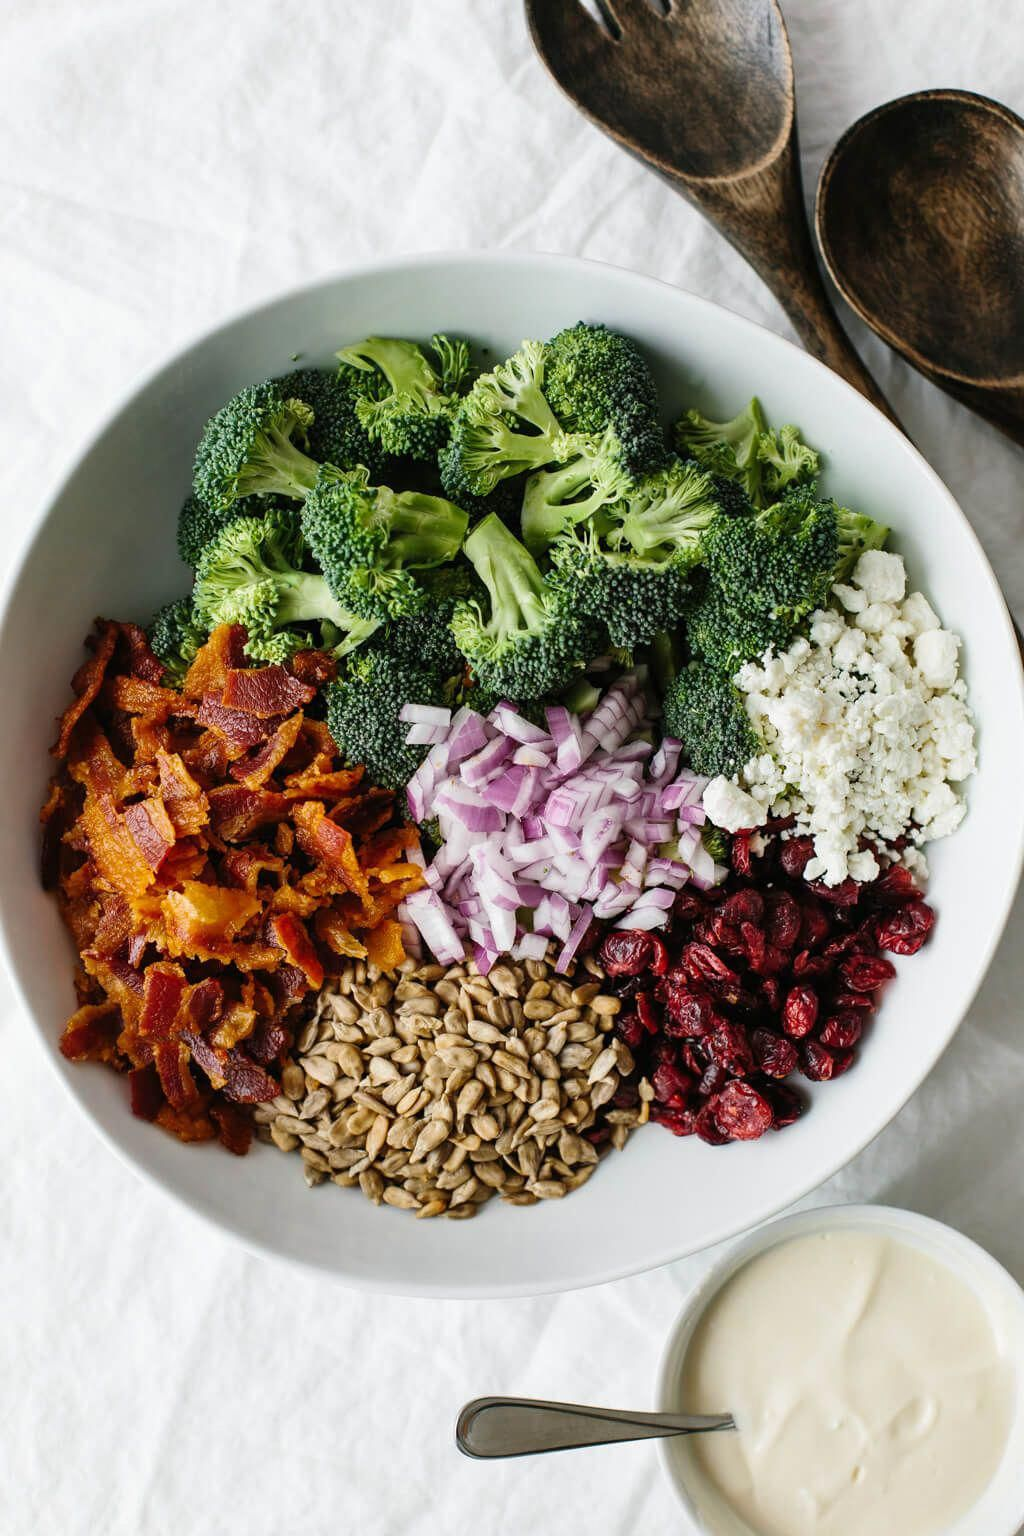 This delicious broccoli salad is a combination of broccoli, bacon, red onion, cranberries, sunflower seeds and goat cheese. It's an easy, healthy broccoli salad recipe.